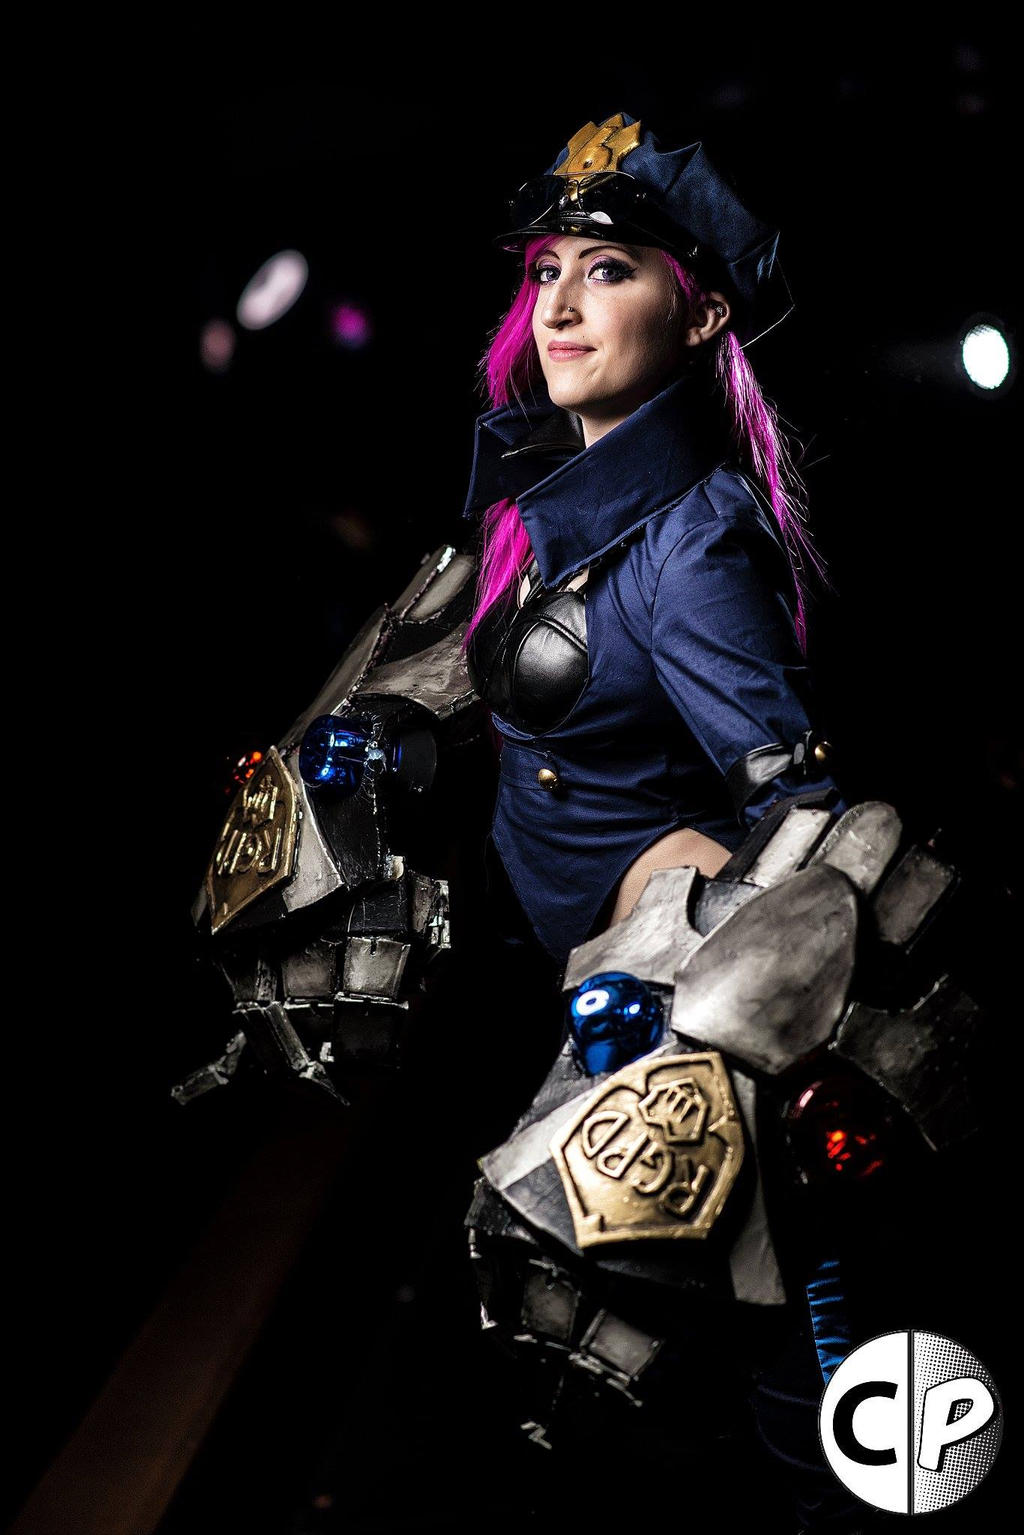 Officer Vi Cosplay League of Legends 7 by spacechocolatesOfficer Vi League Of Legends